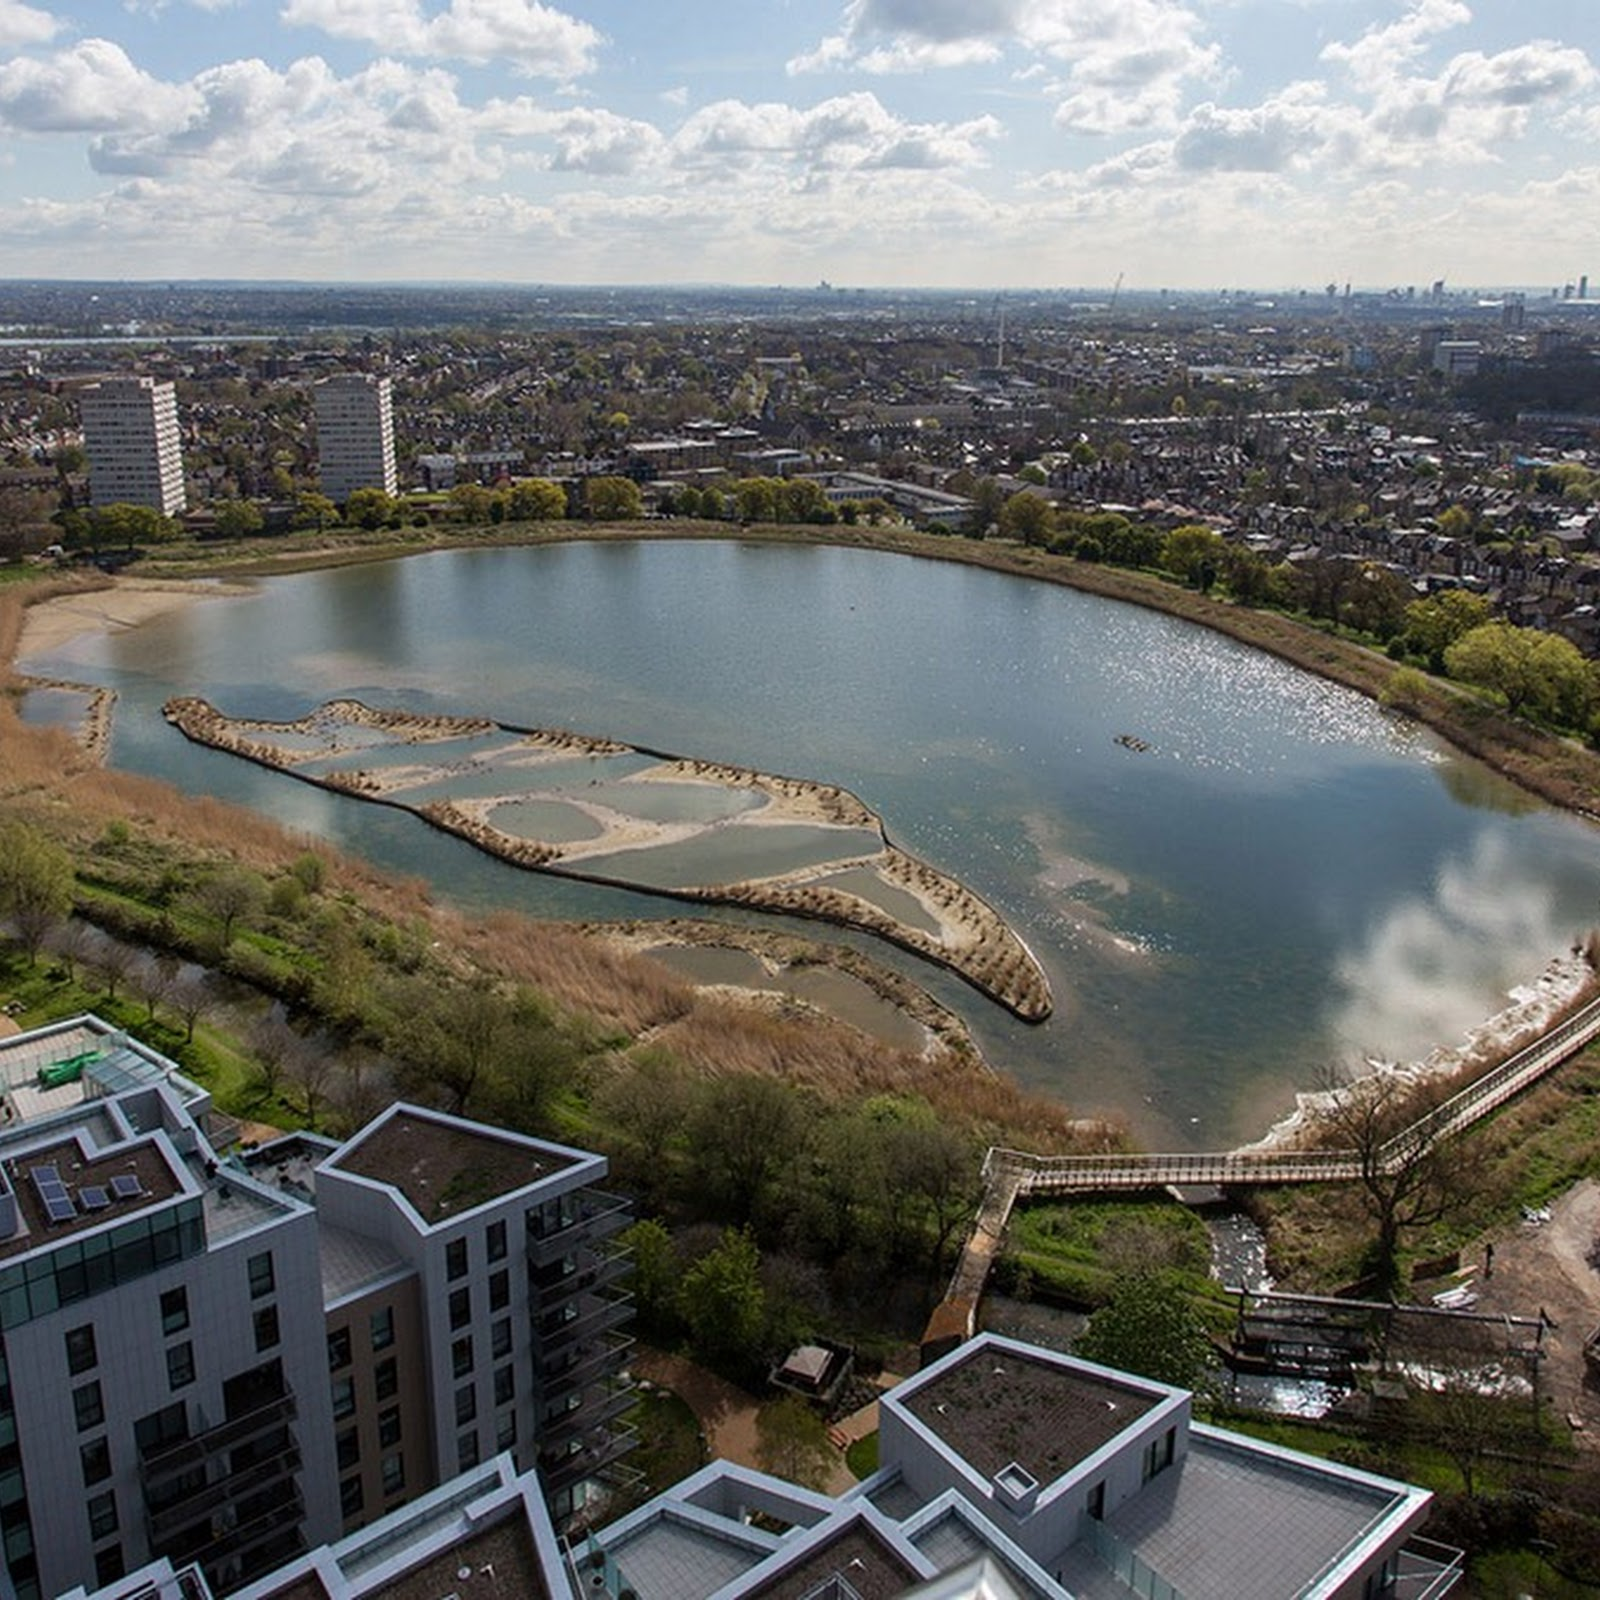 Woodberry Wetlands: A Nature Reserve in The Heart of London